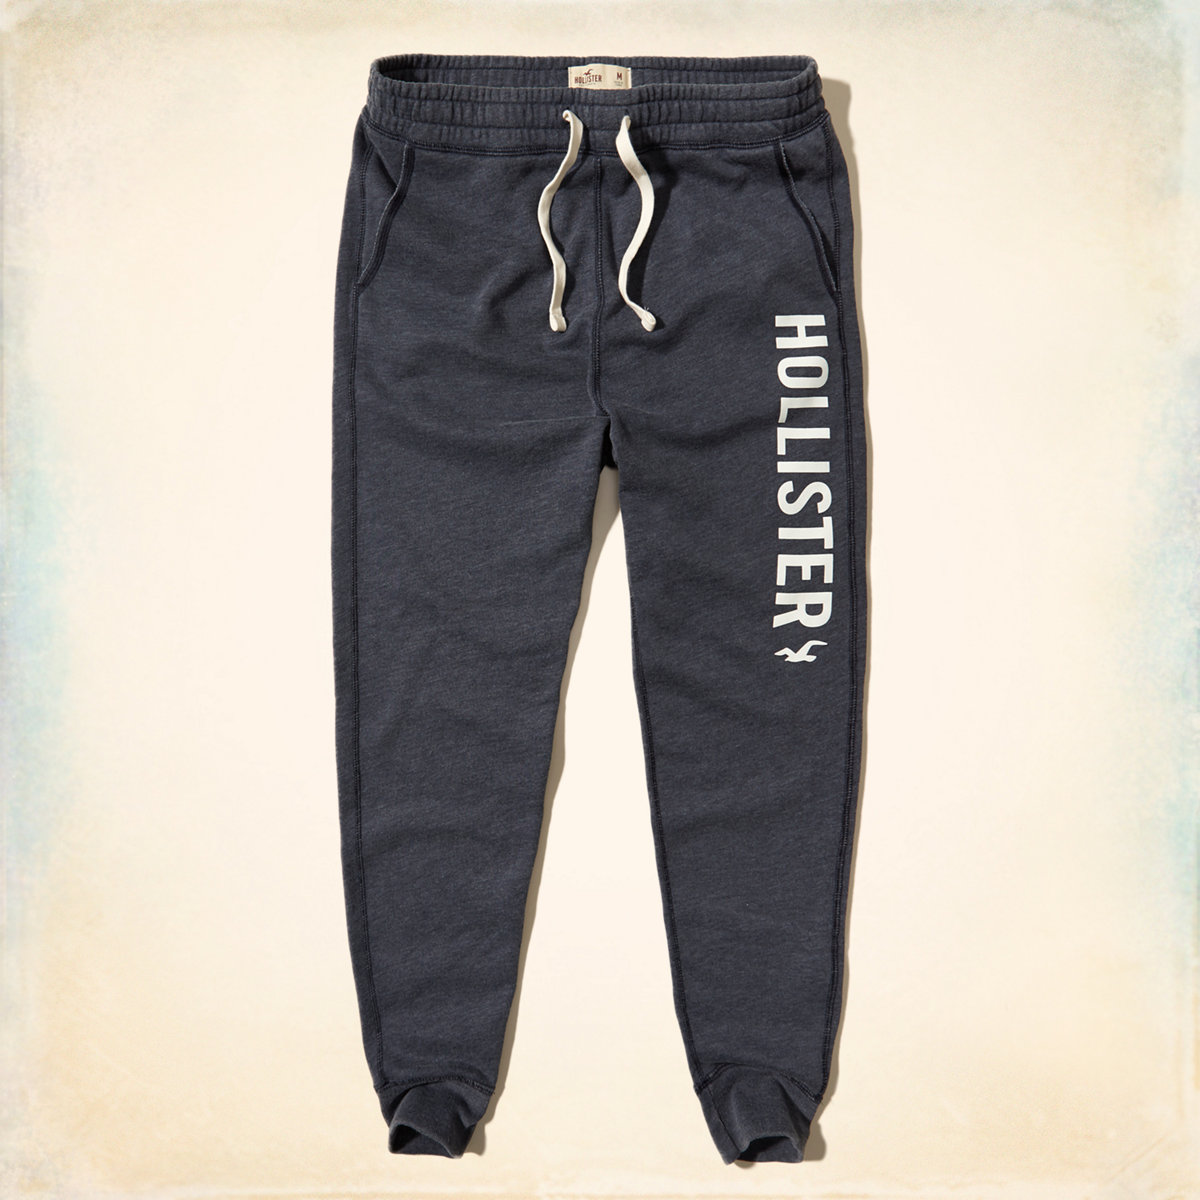 Graphic Skinny Jogger Pants